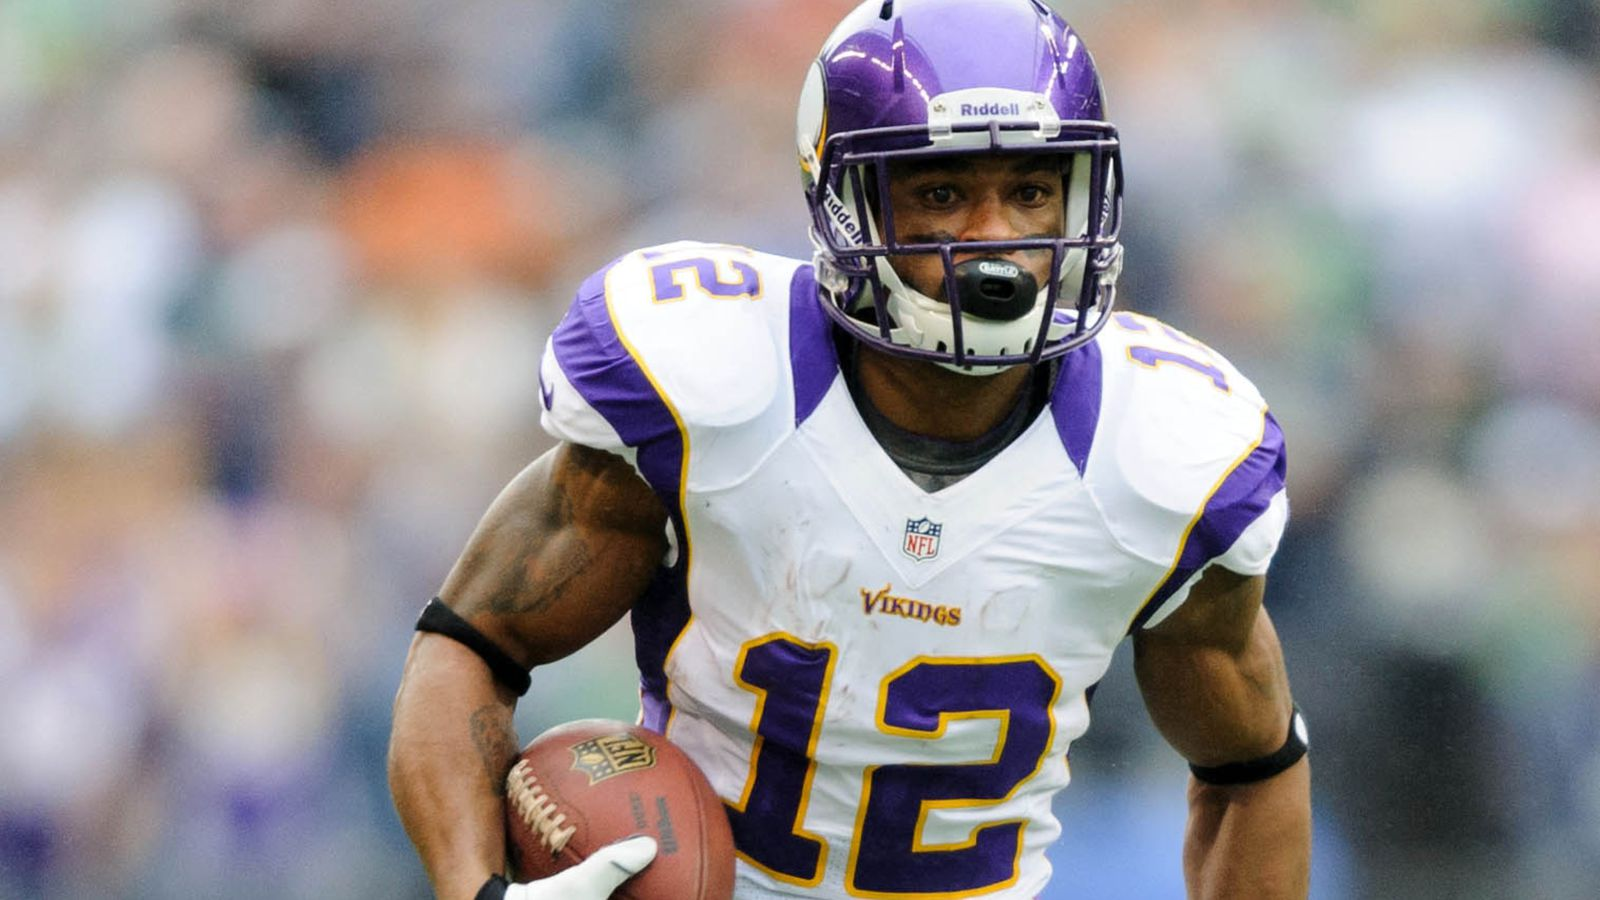 Vikings willing to trade Percy Harvin, according to report ...